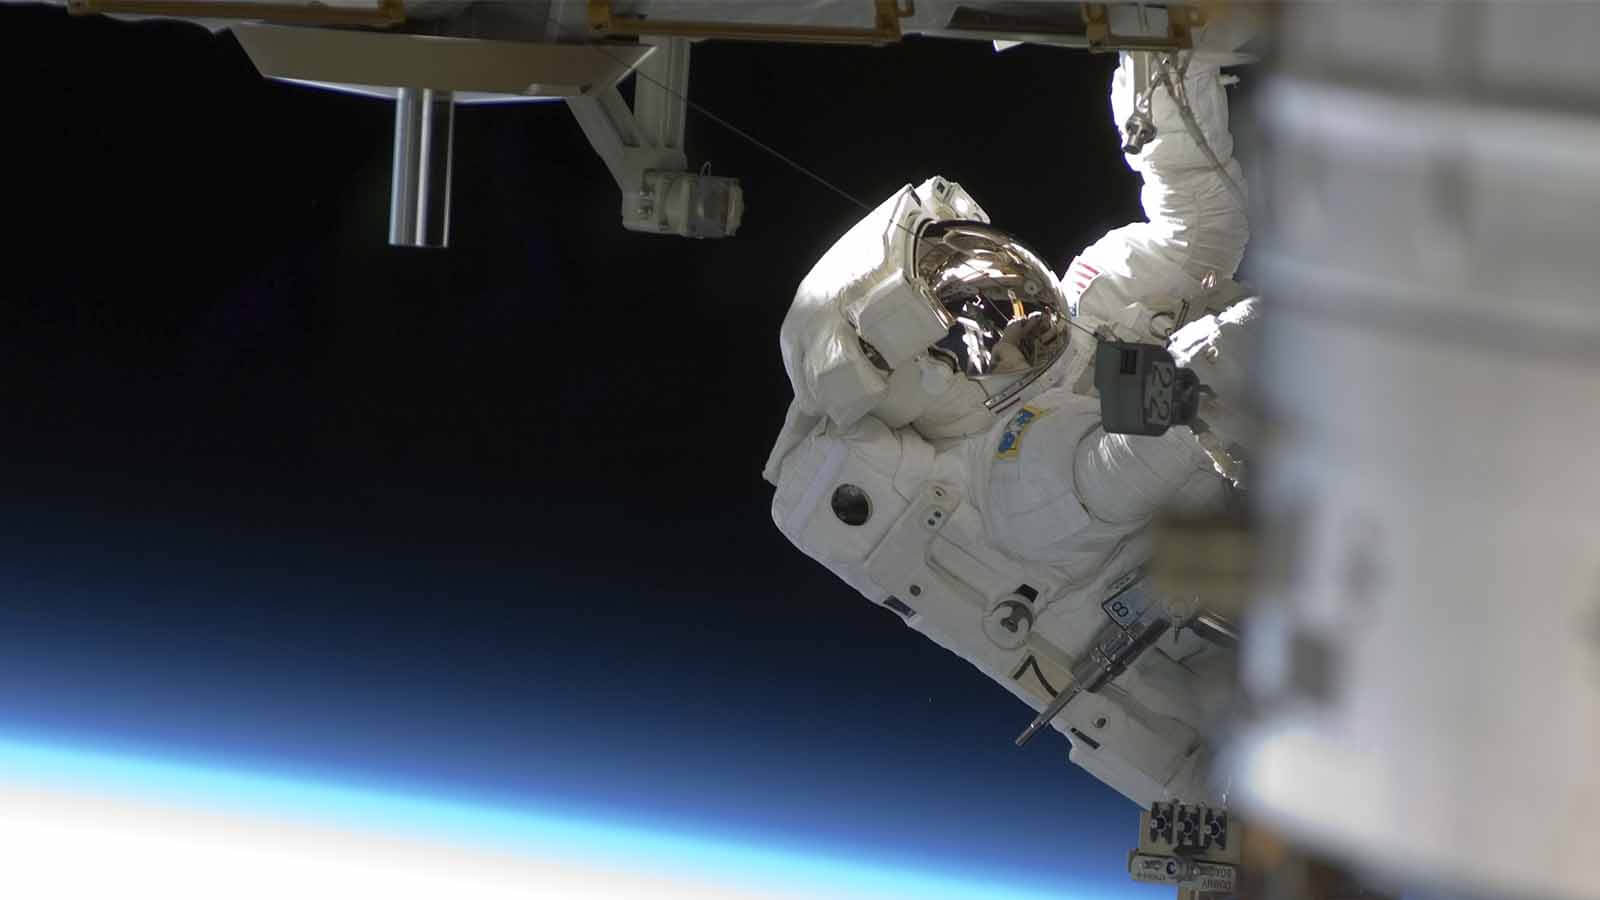 An Astronaut working in space